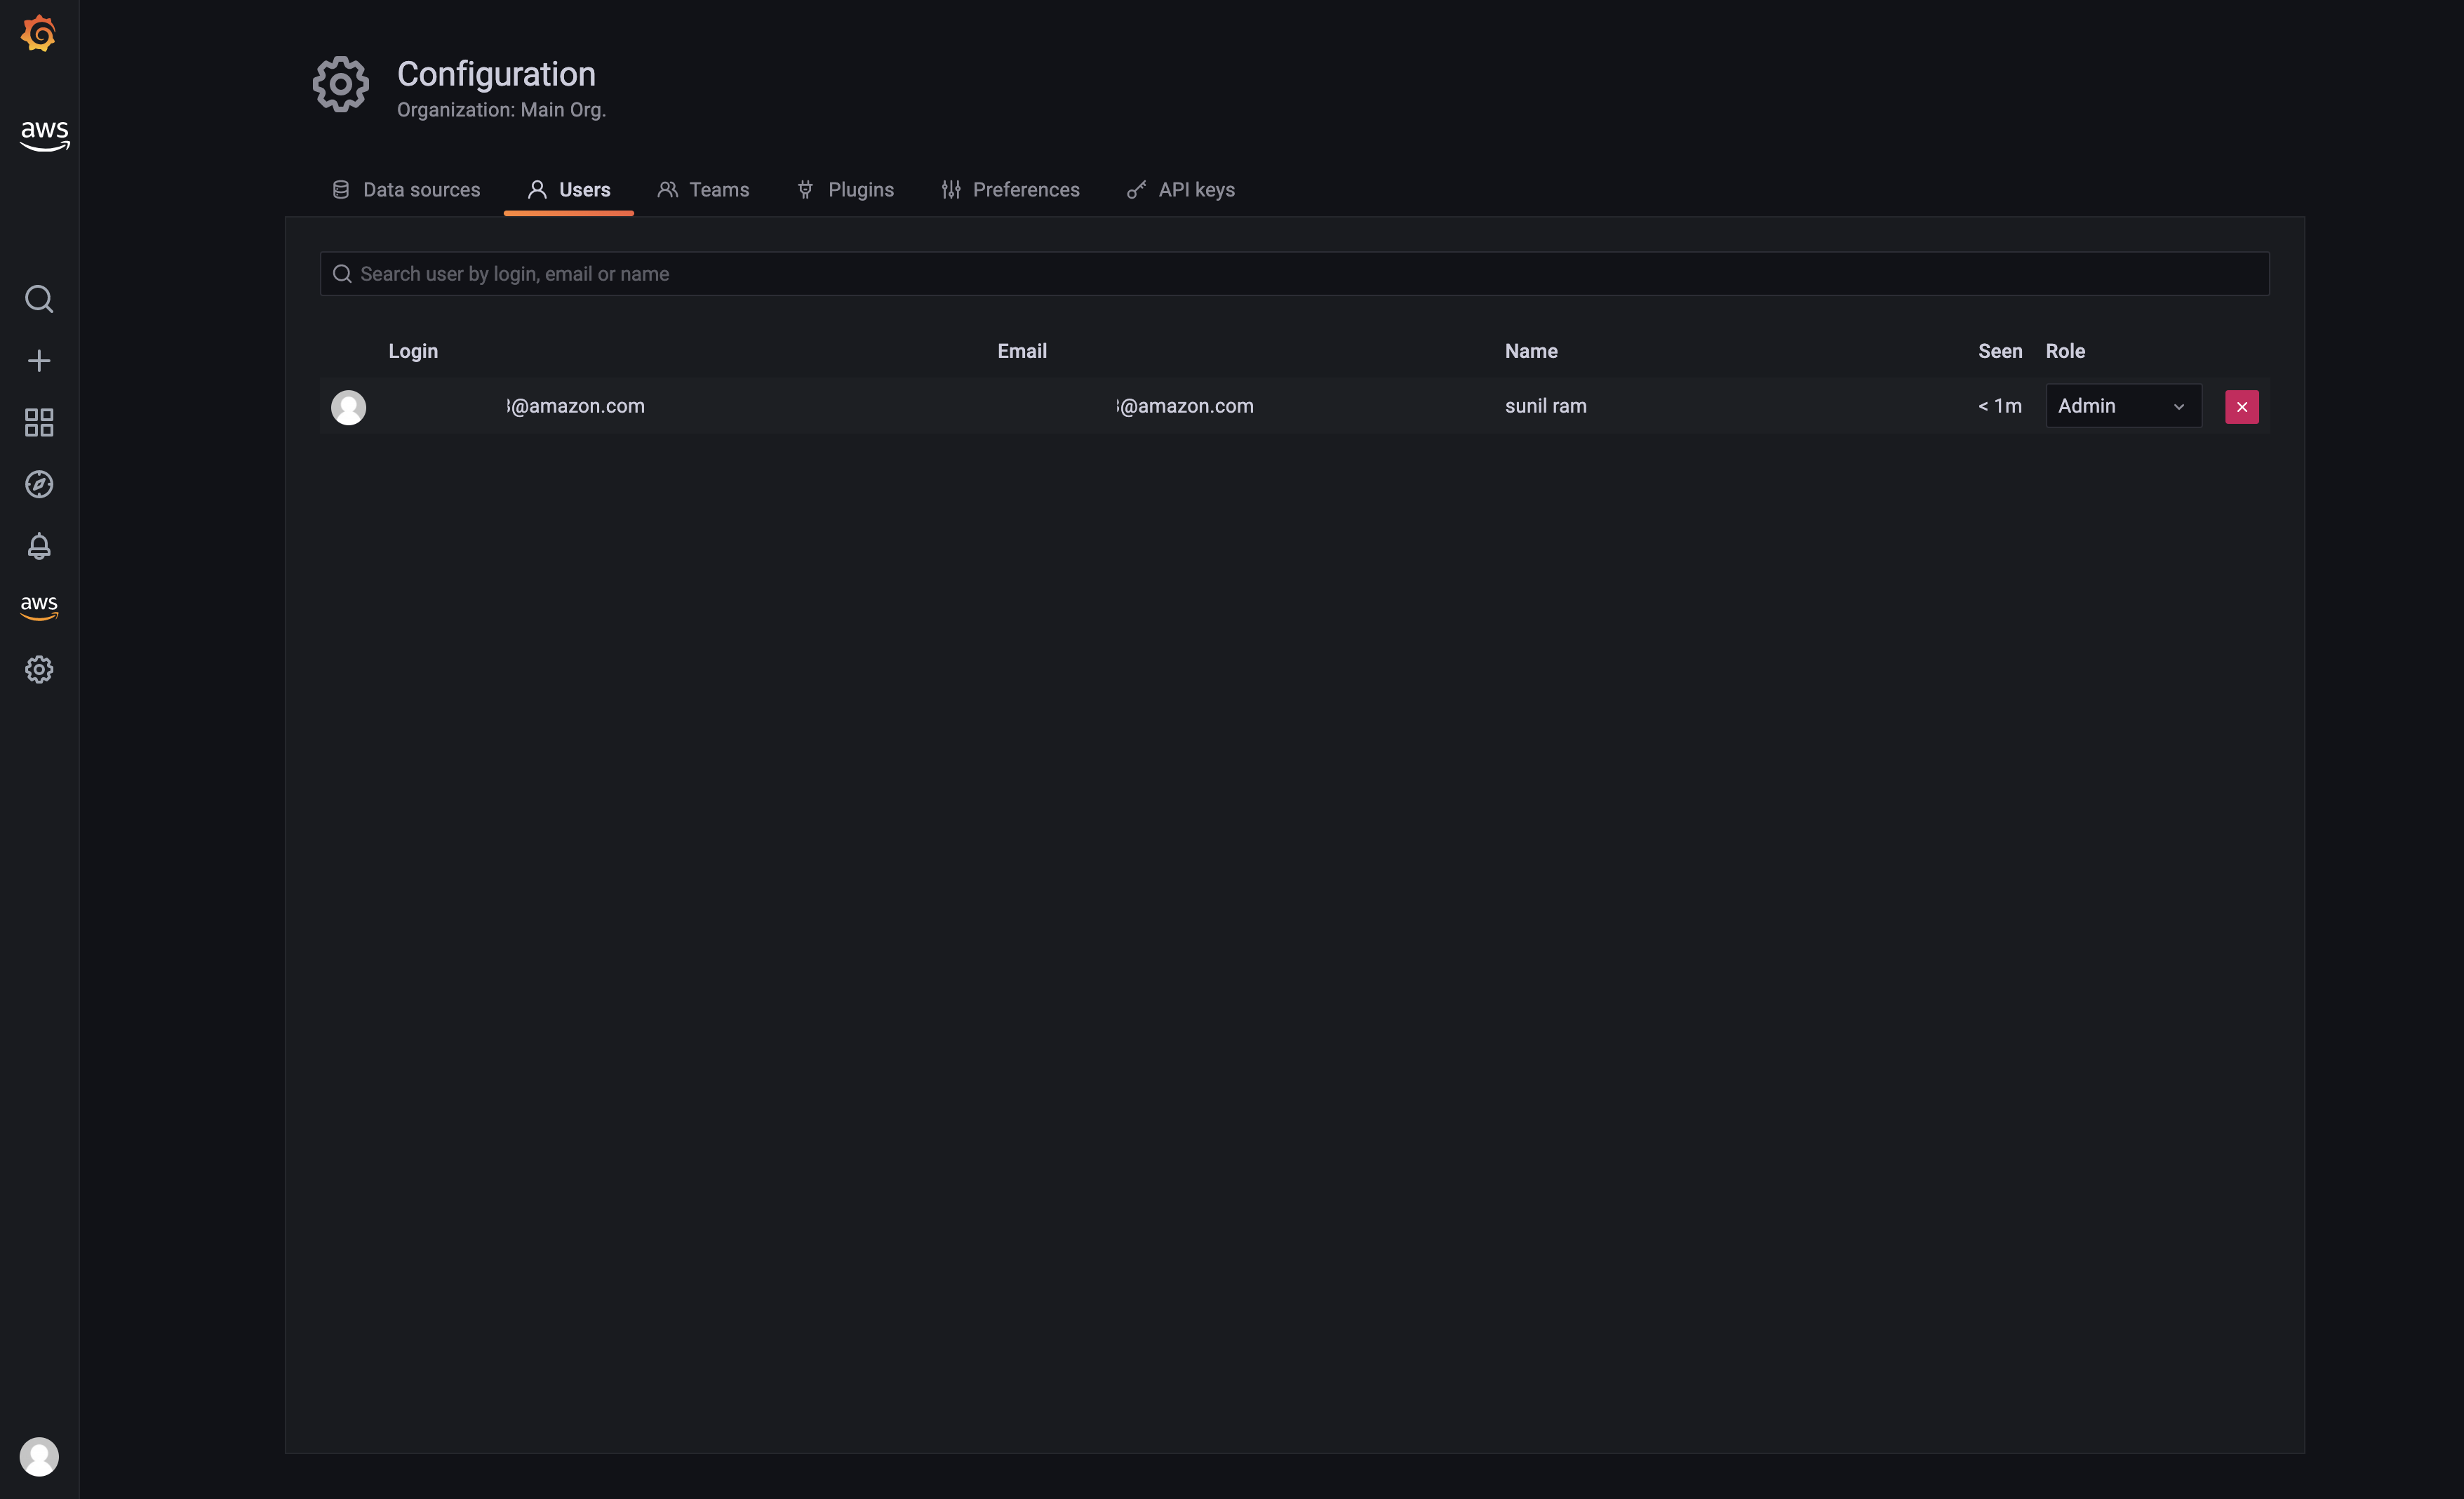 The AMG workspace environment. The Configuration menu displays Data Sources, Users, Teams, Plugins, Preferences, and API Keys tabs.